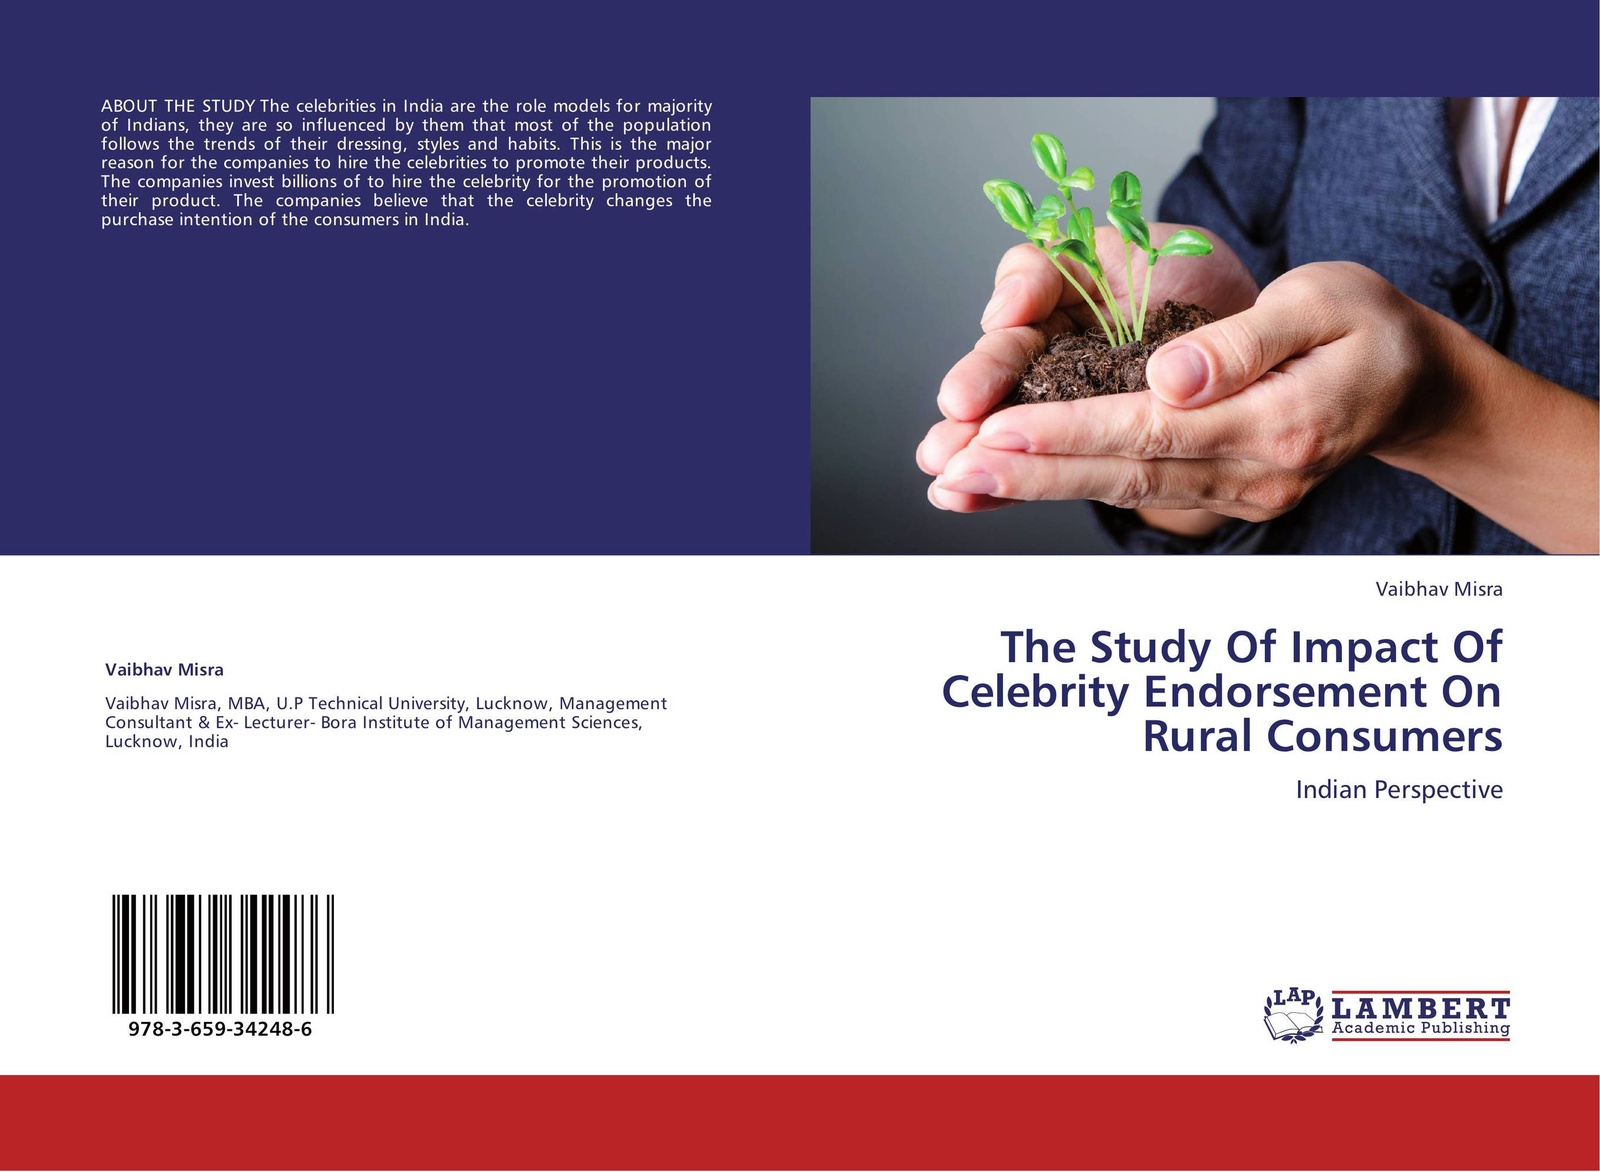 Vaibhav Misra The Study Of Impact Of Celebrity Endorsement On Rural Consumers